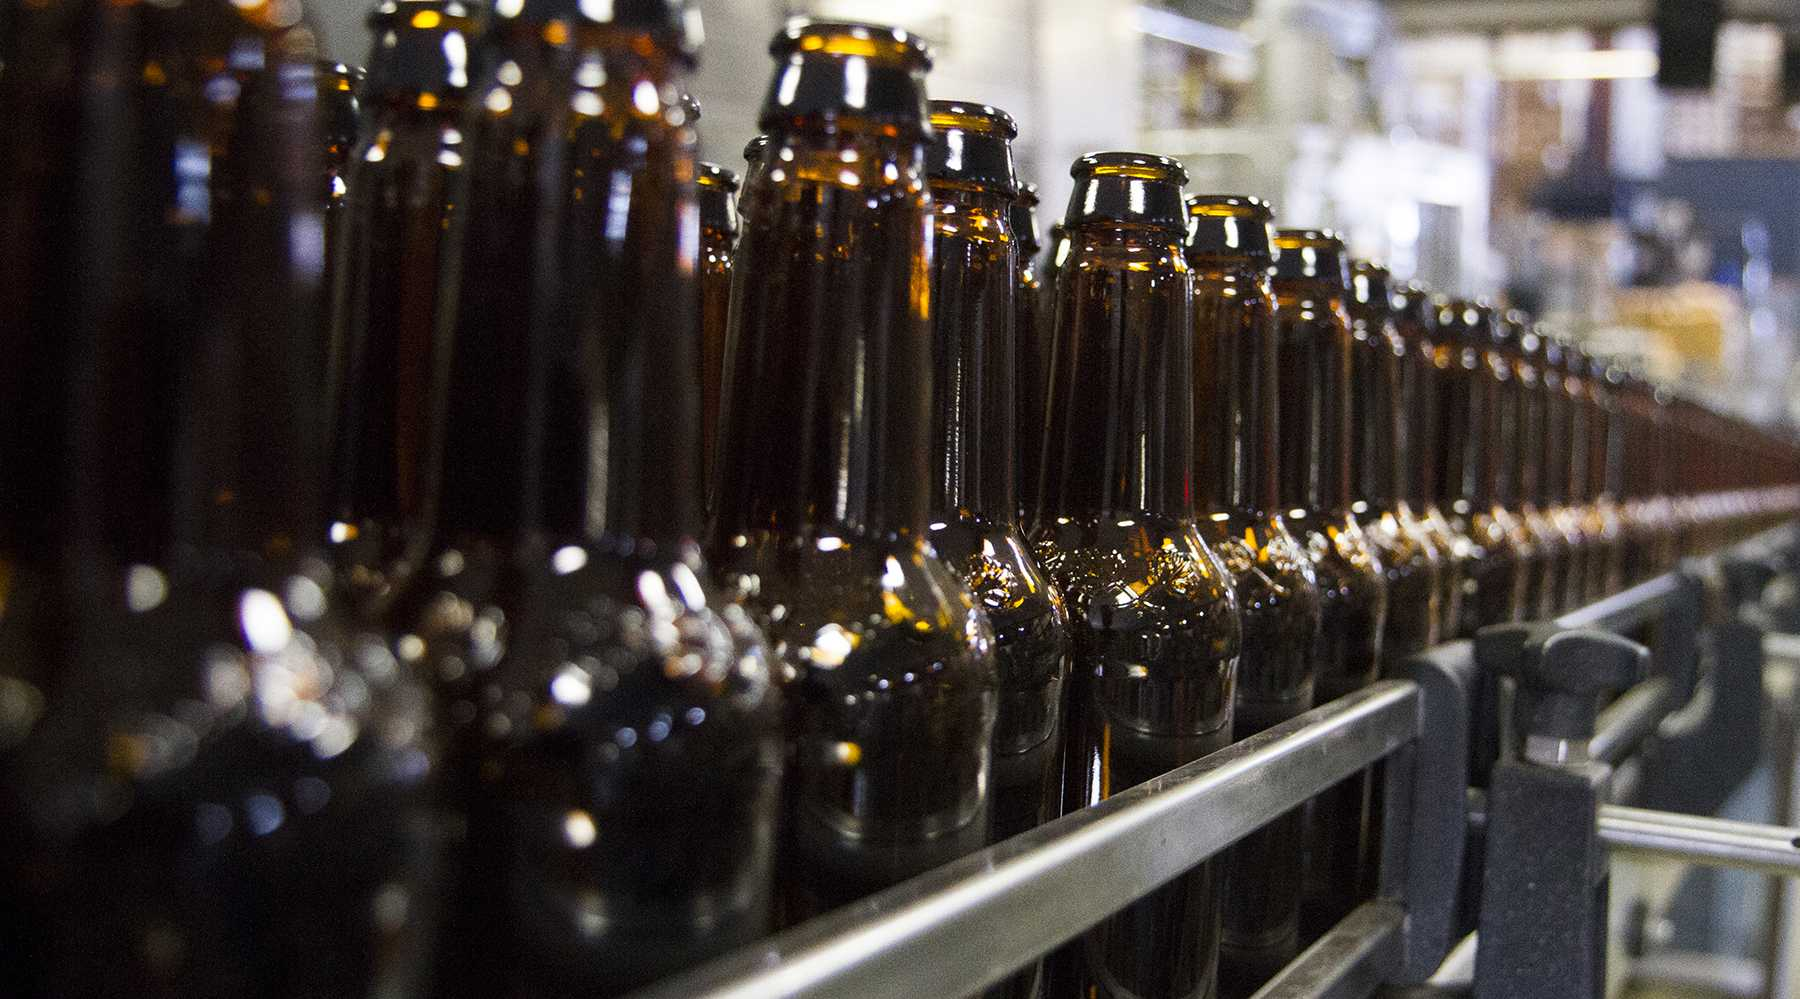 Bottles wait on the bottling line to be filled at Odell Brewing Company on Wednesday afternoon.